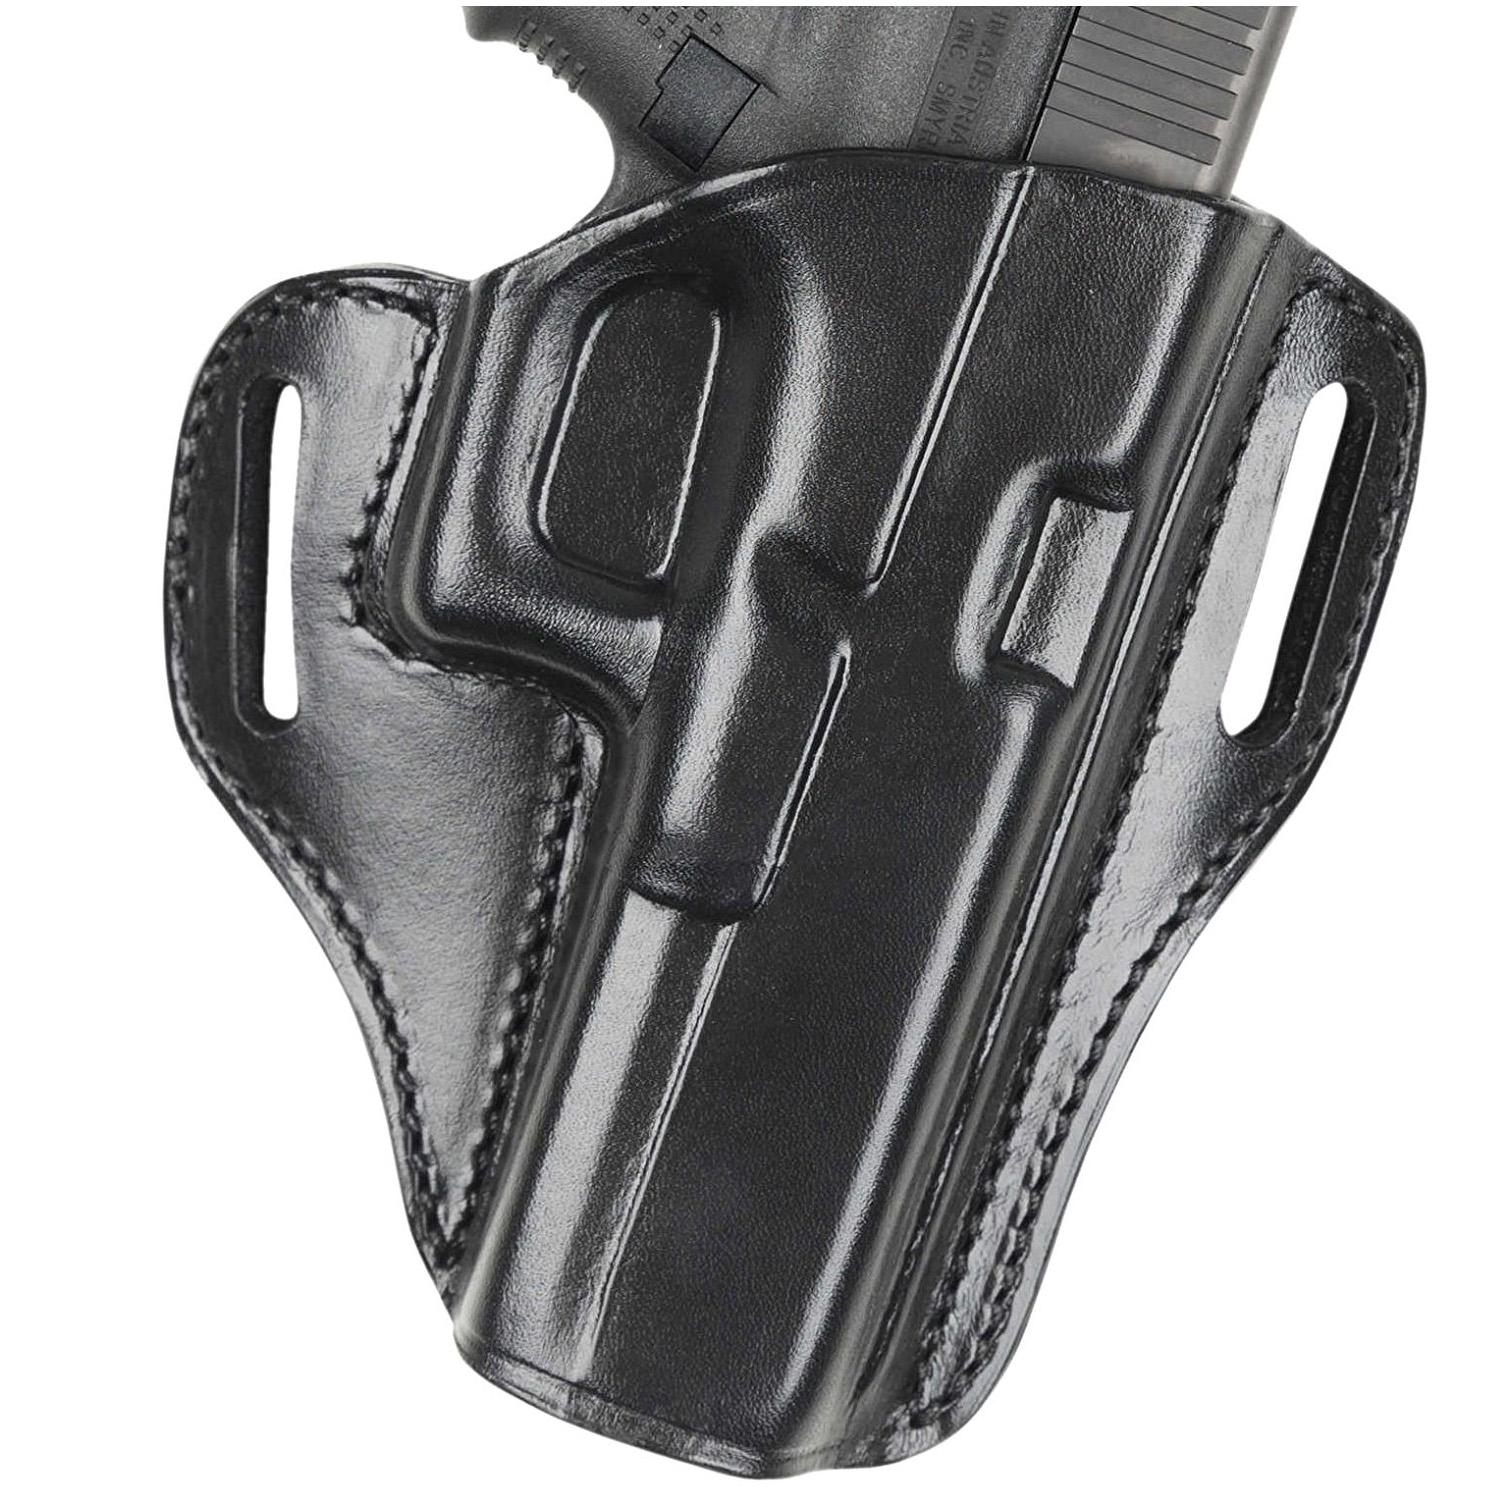 Bianchi Model 57 Remedy Belt Slide Holster, Glock 43